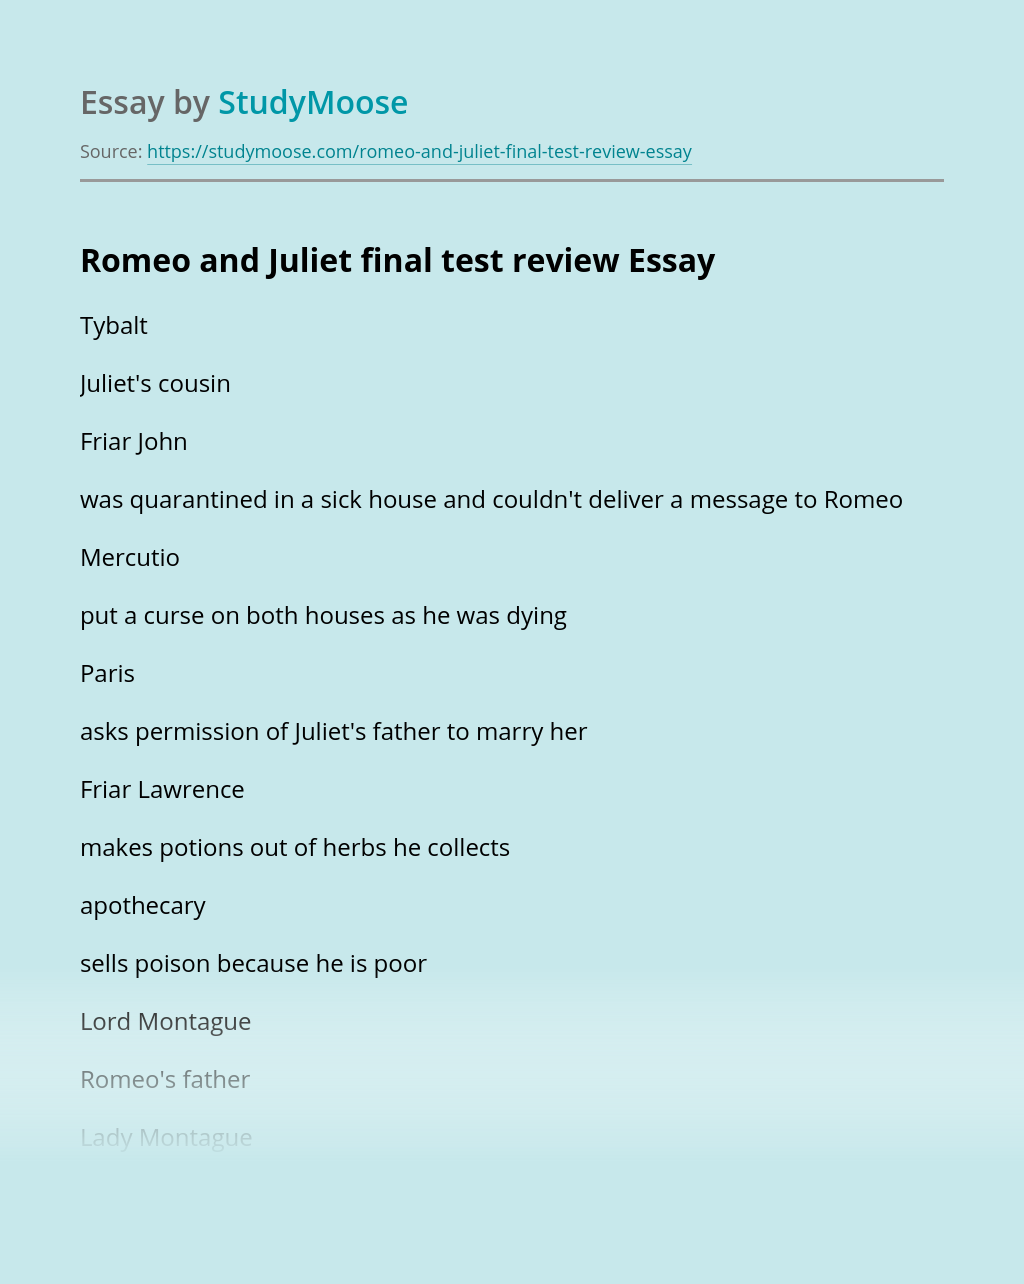 Romeo and Juliet final test review